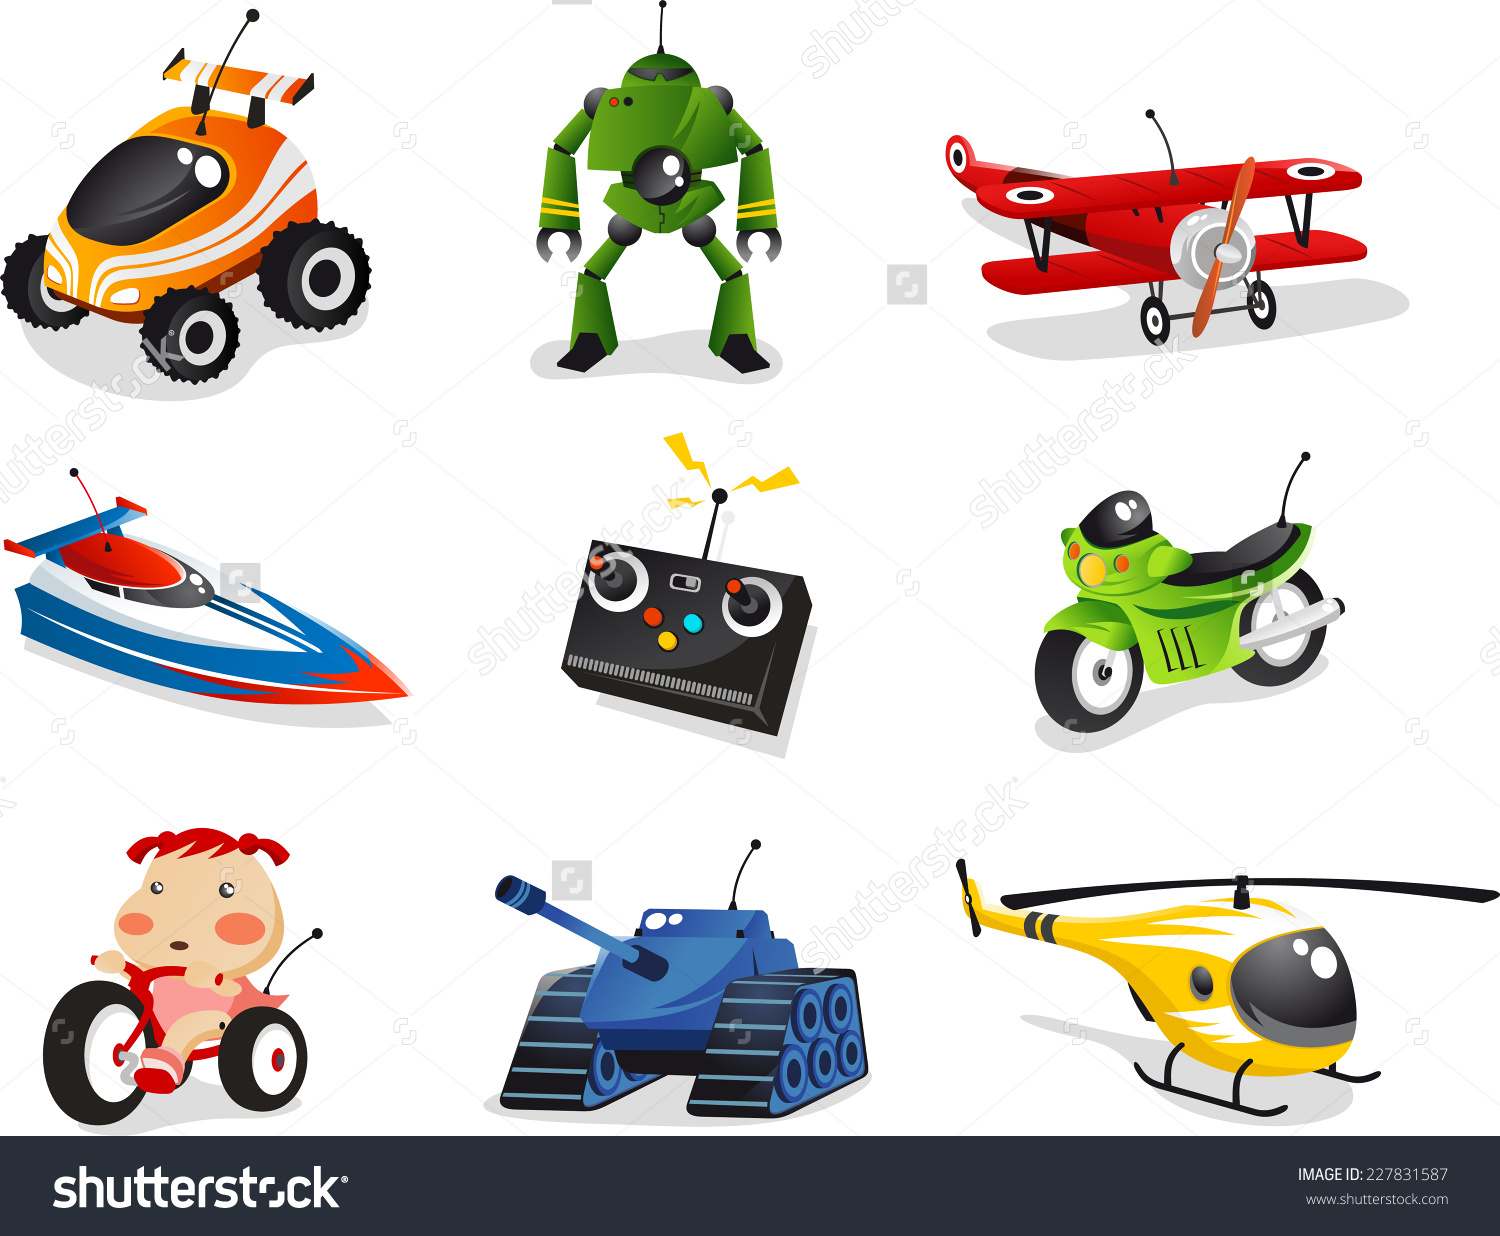 Remote Control Toy Collection Includes Car Stock Vector 227831587.